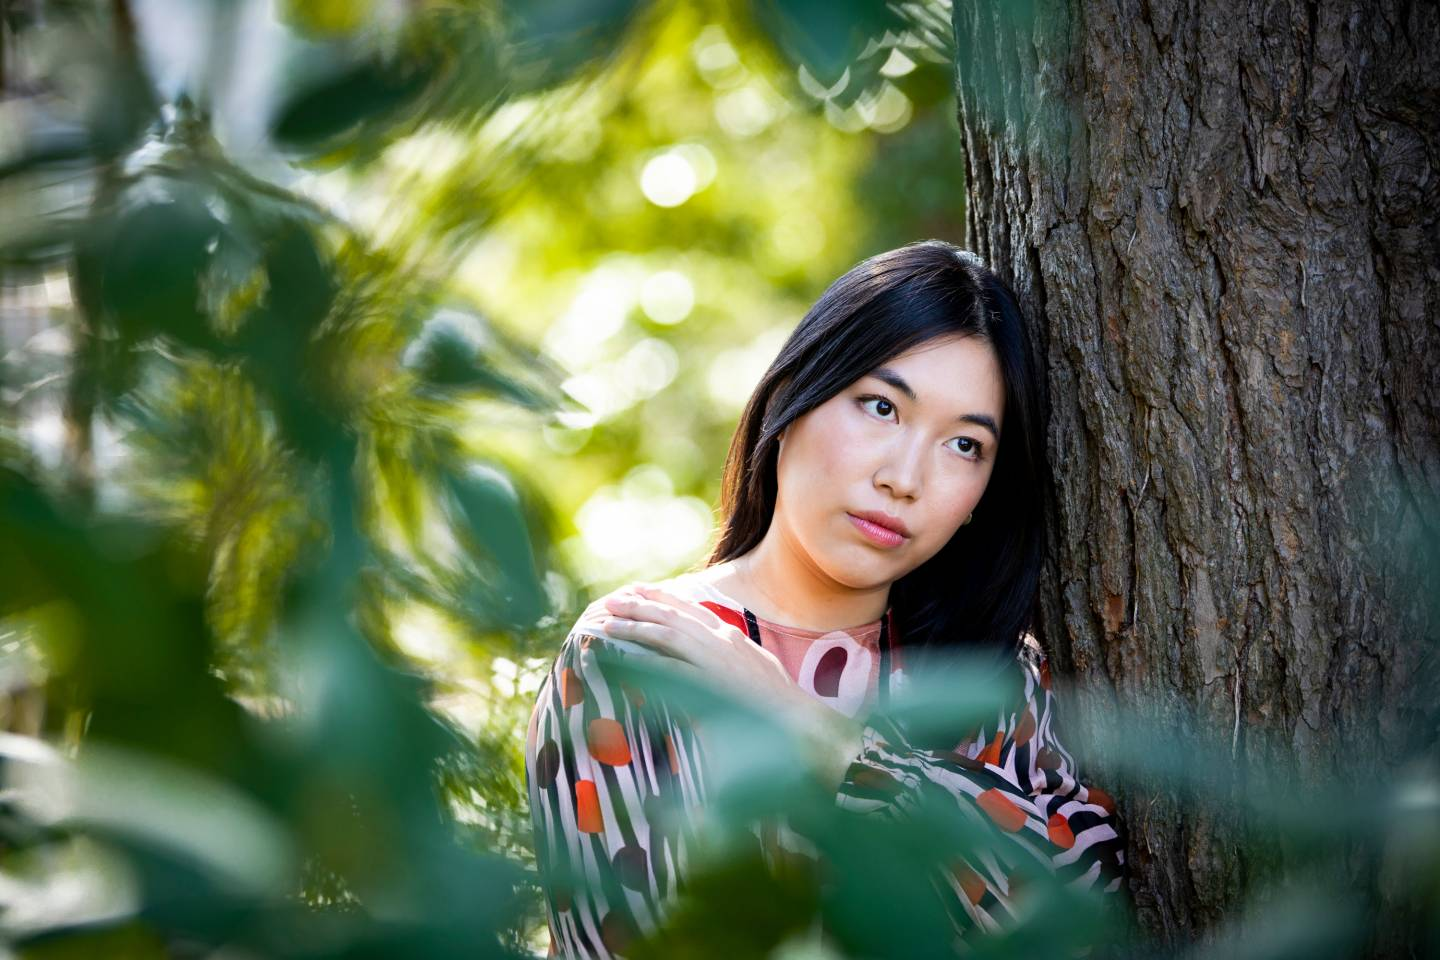 www.princeton.edu: History, memory, nature: Chuang explores the Asian American experience through poetry